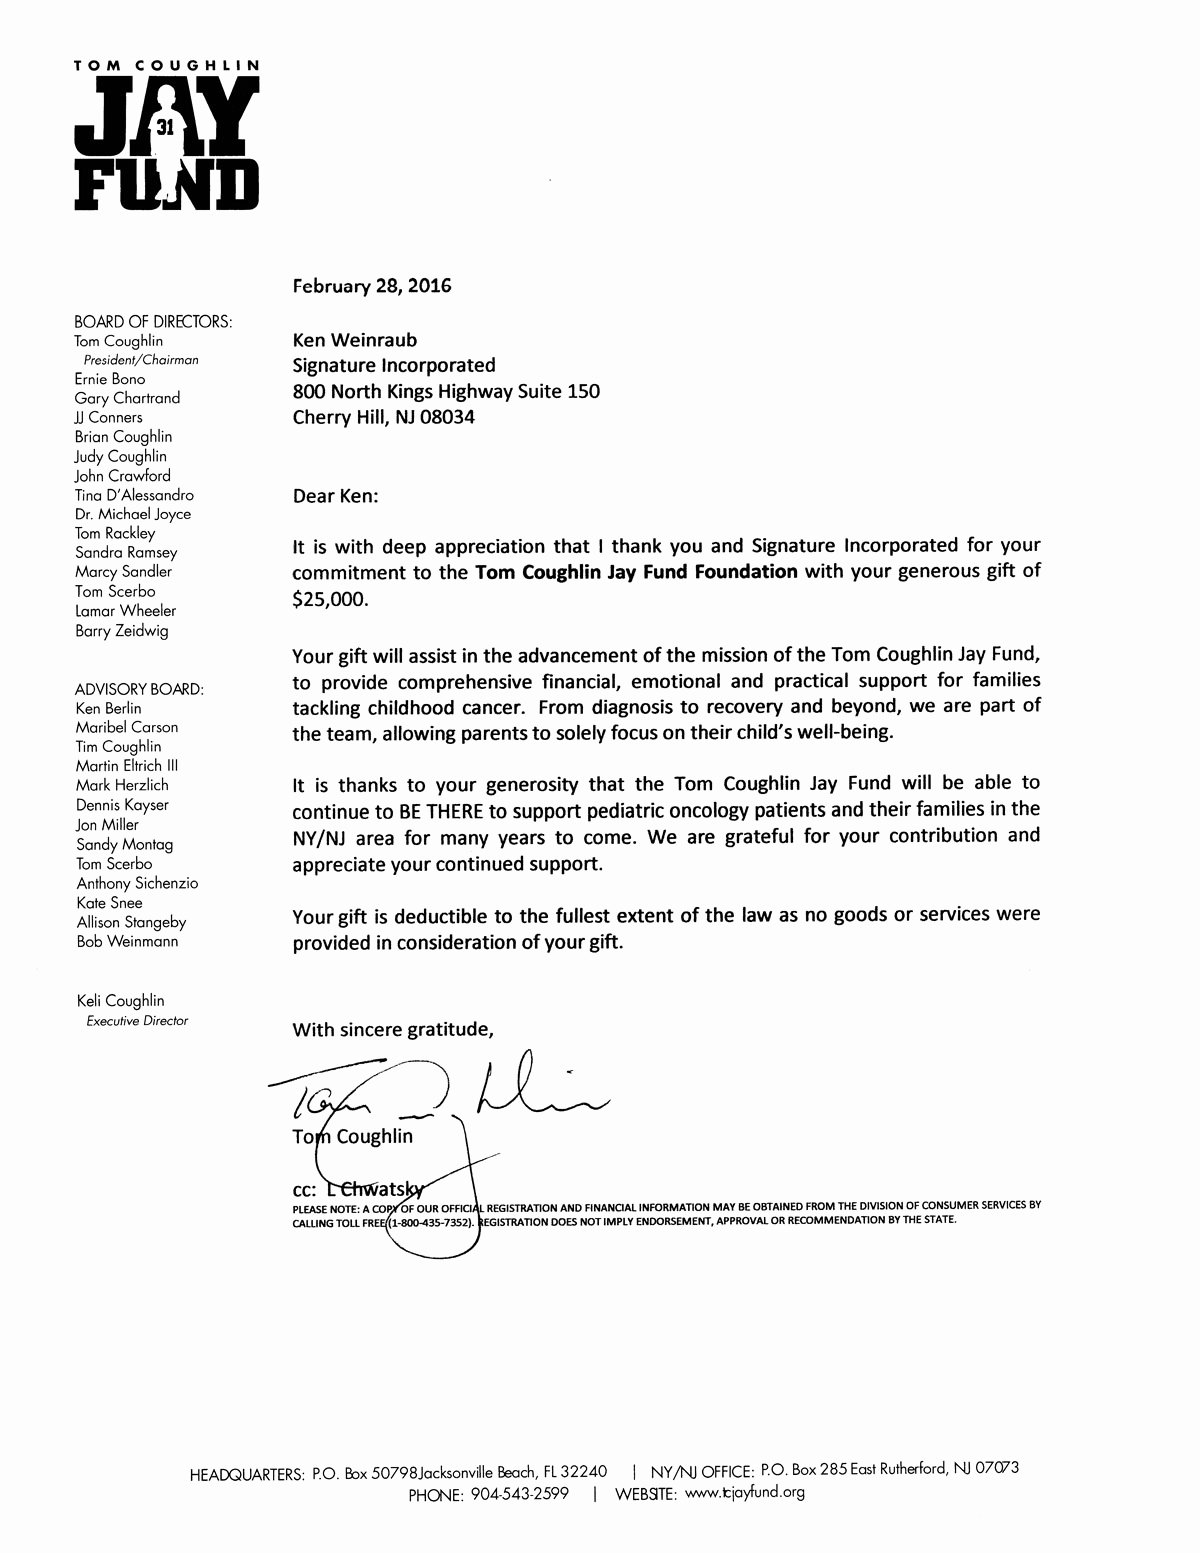 Letter Of Recommendation Signature Lovely Signature Supports the tom Coughlin Jay Fund Foundation